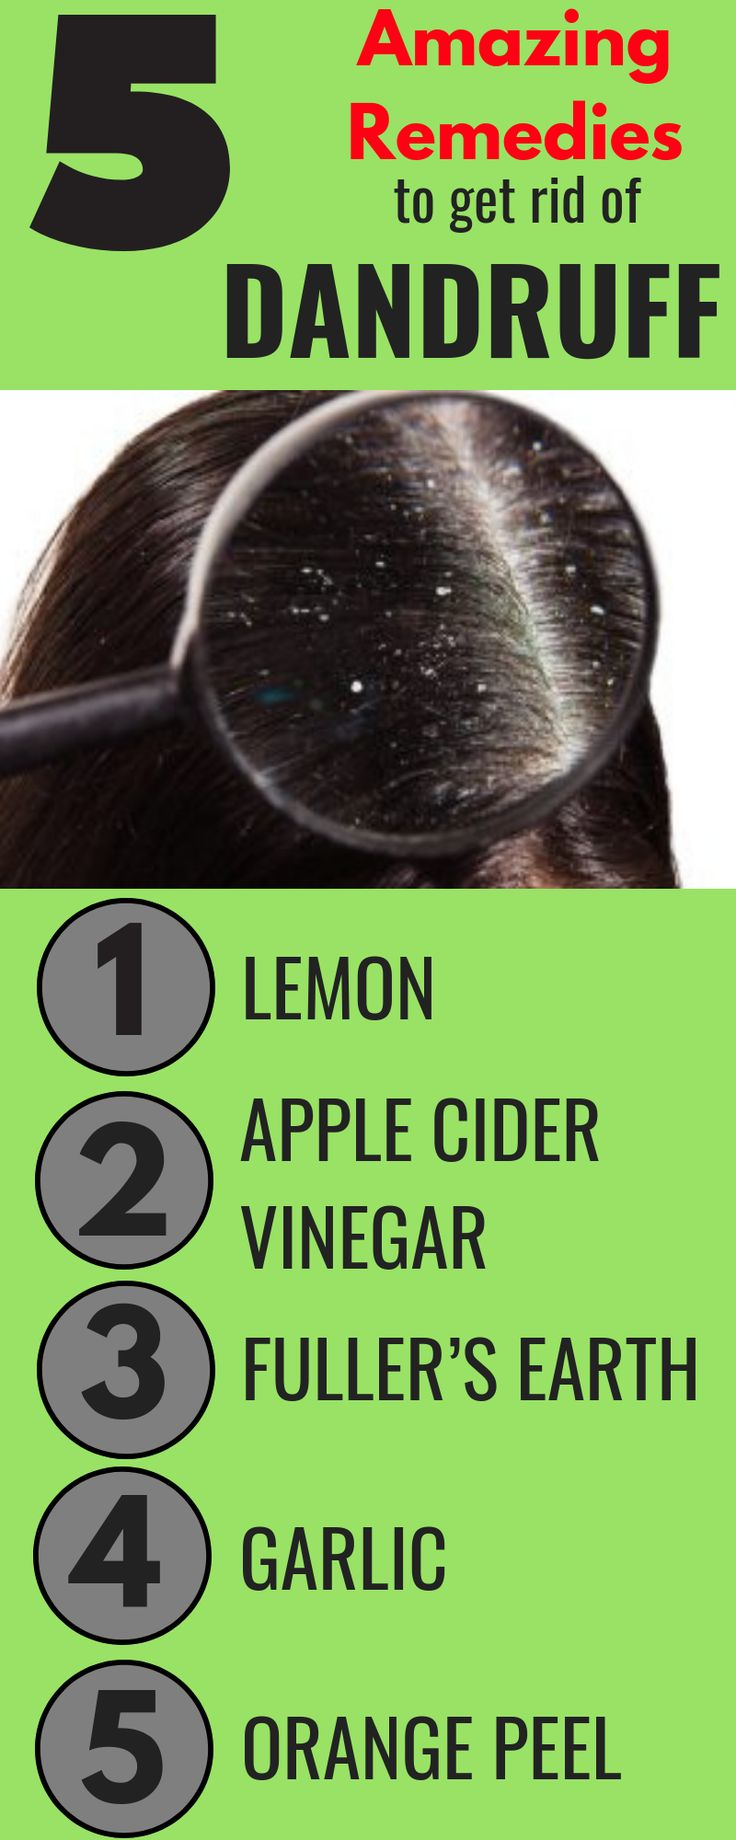 How to get rid of dandruff fast 5 amazing home remedies